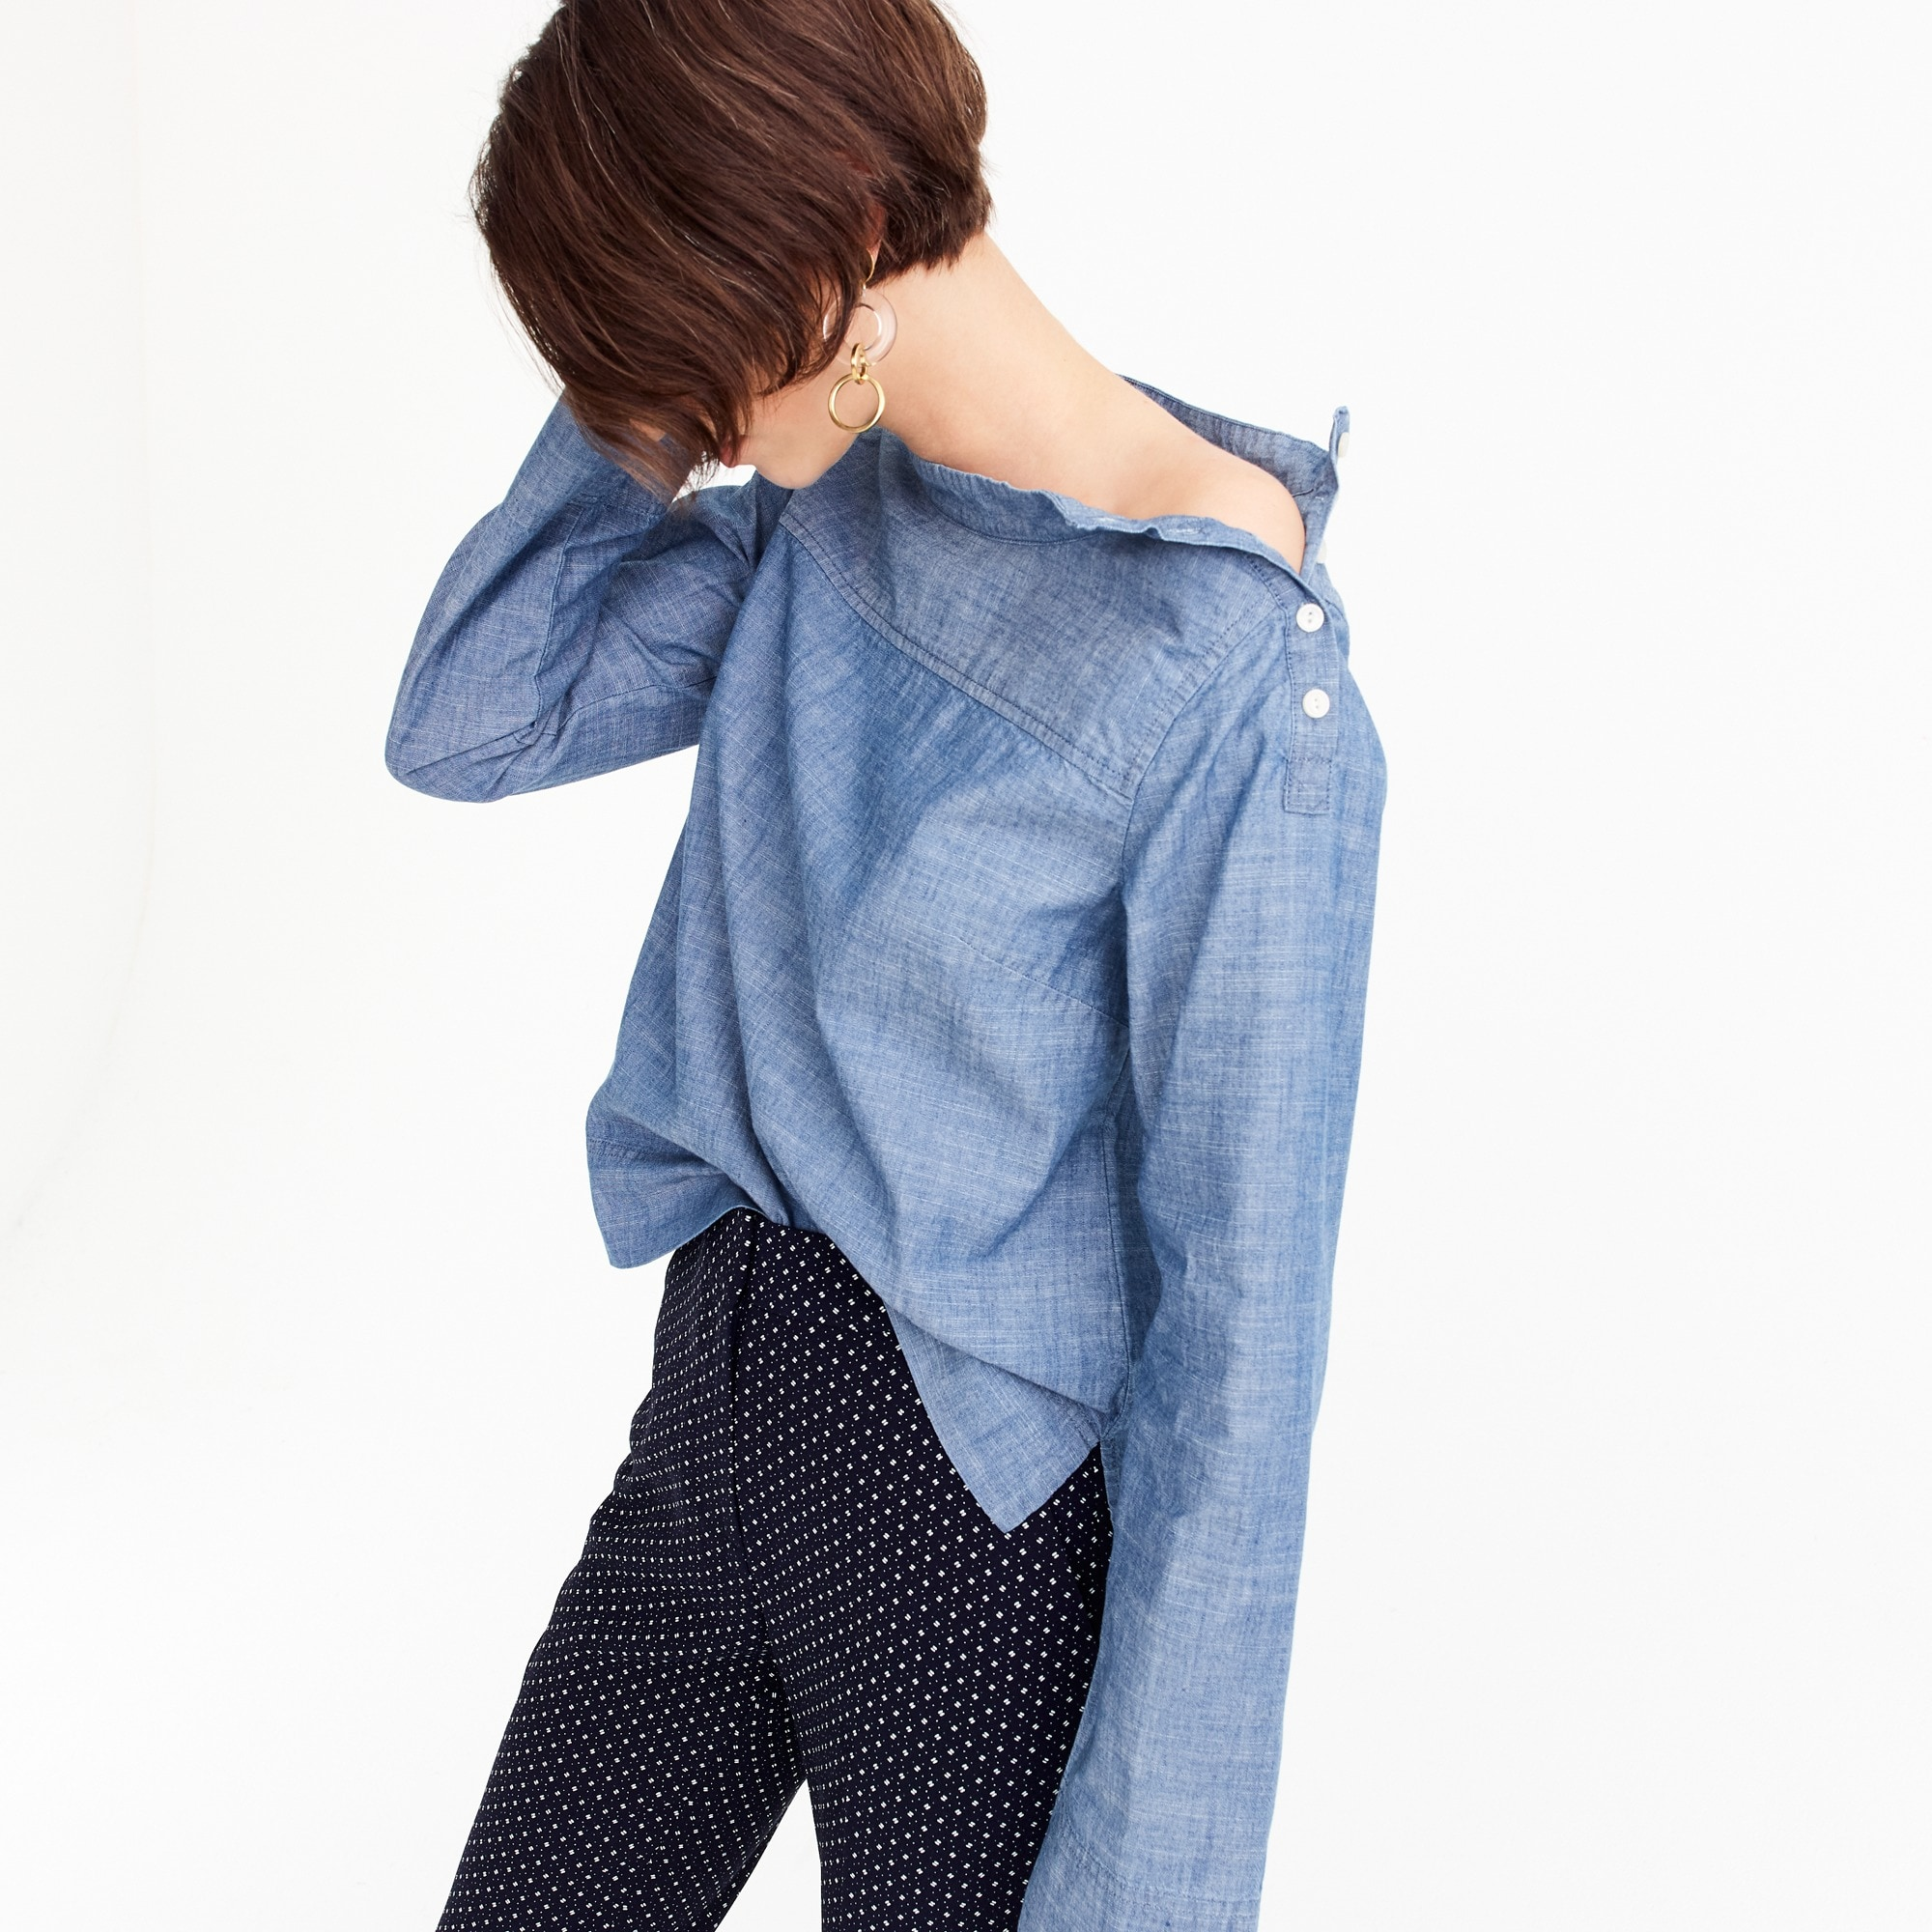 Image 1 for Funnelneck shirt in chambray